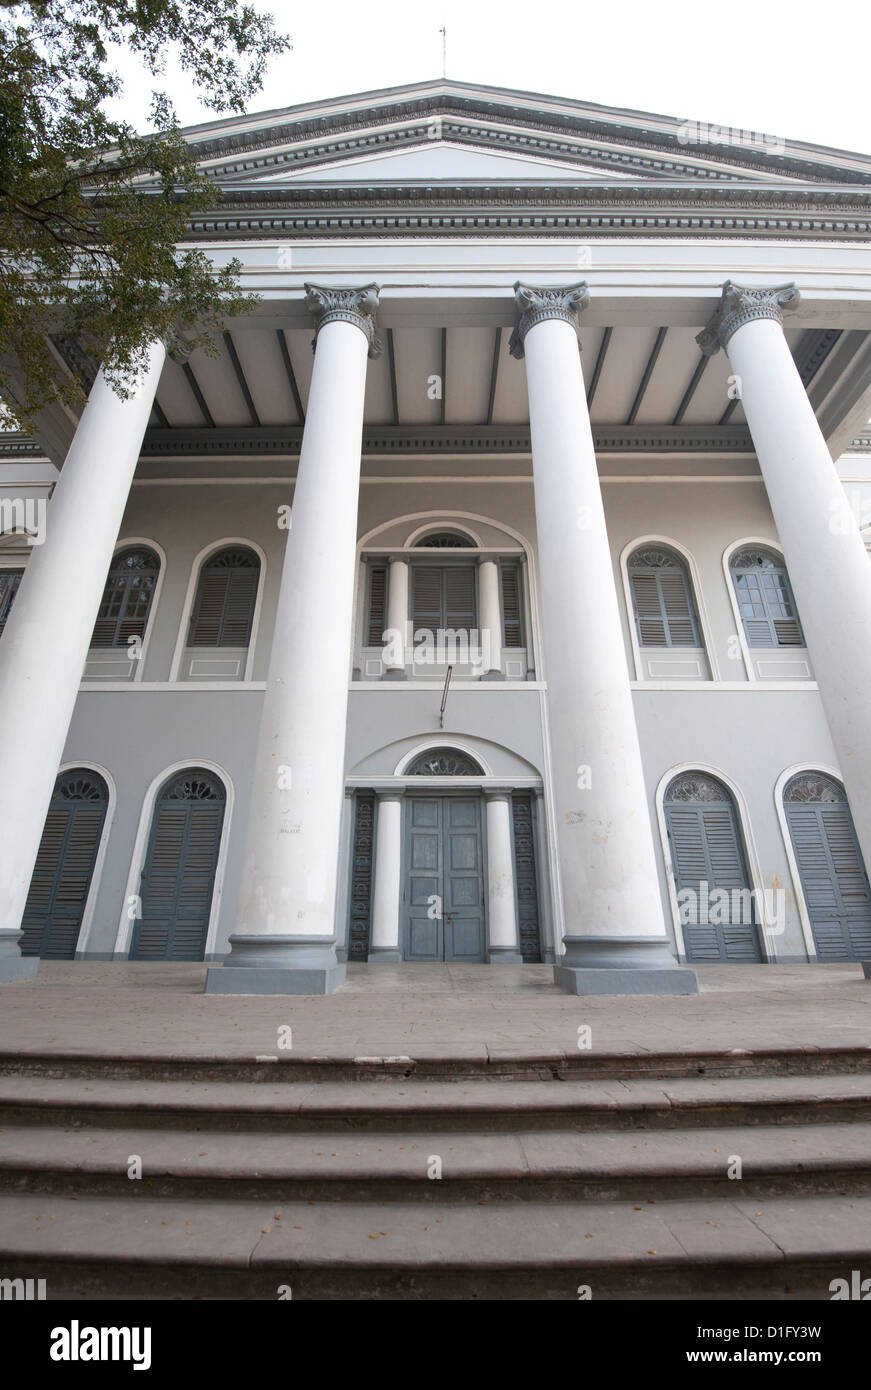 Entrance to Serampore College, in the old Danish colony on the banks of the River Hooghly, Serampore, West Bengal, - Stock Image